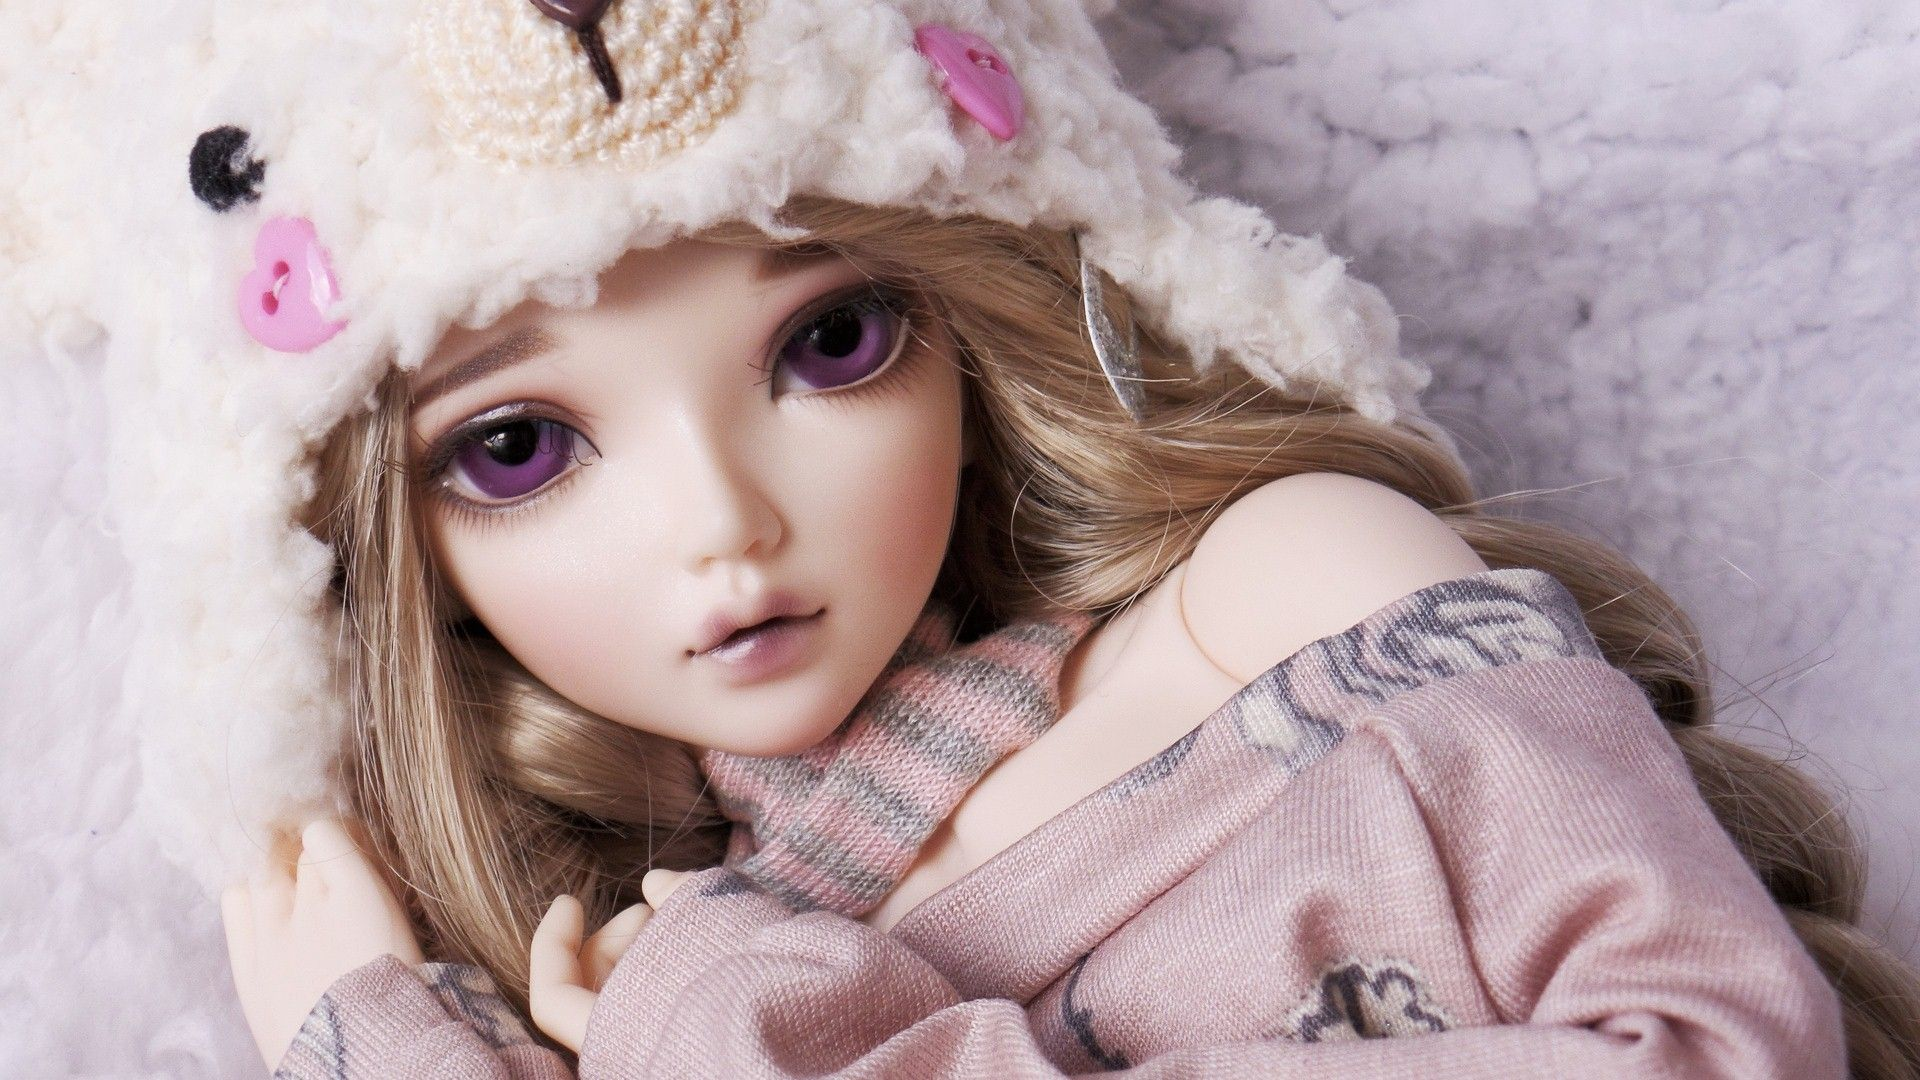 Barbie Wallpaper For Mobile posted by ...